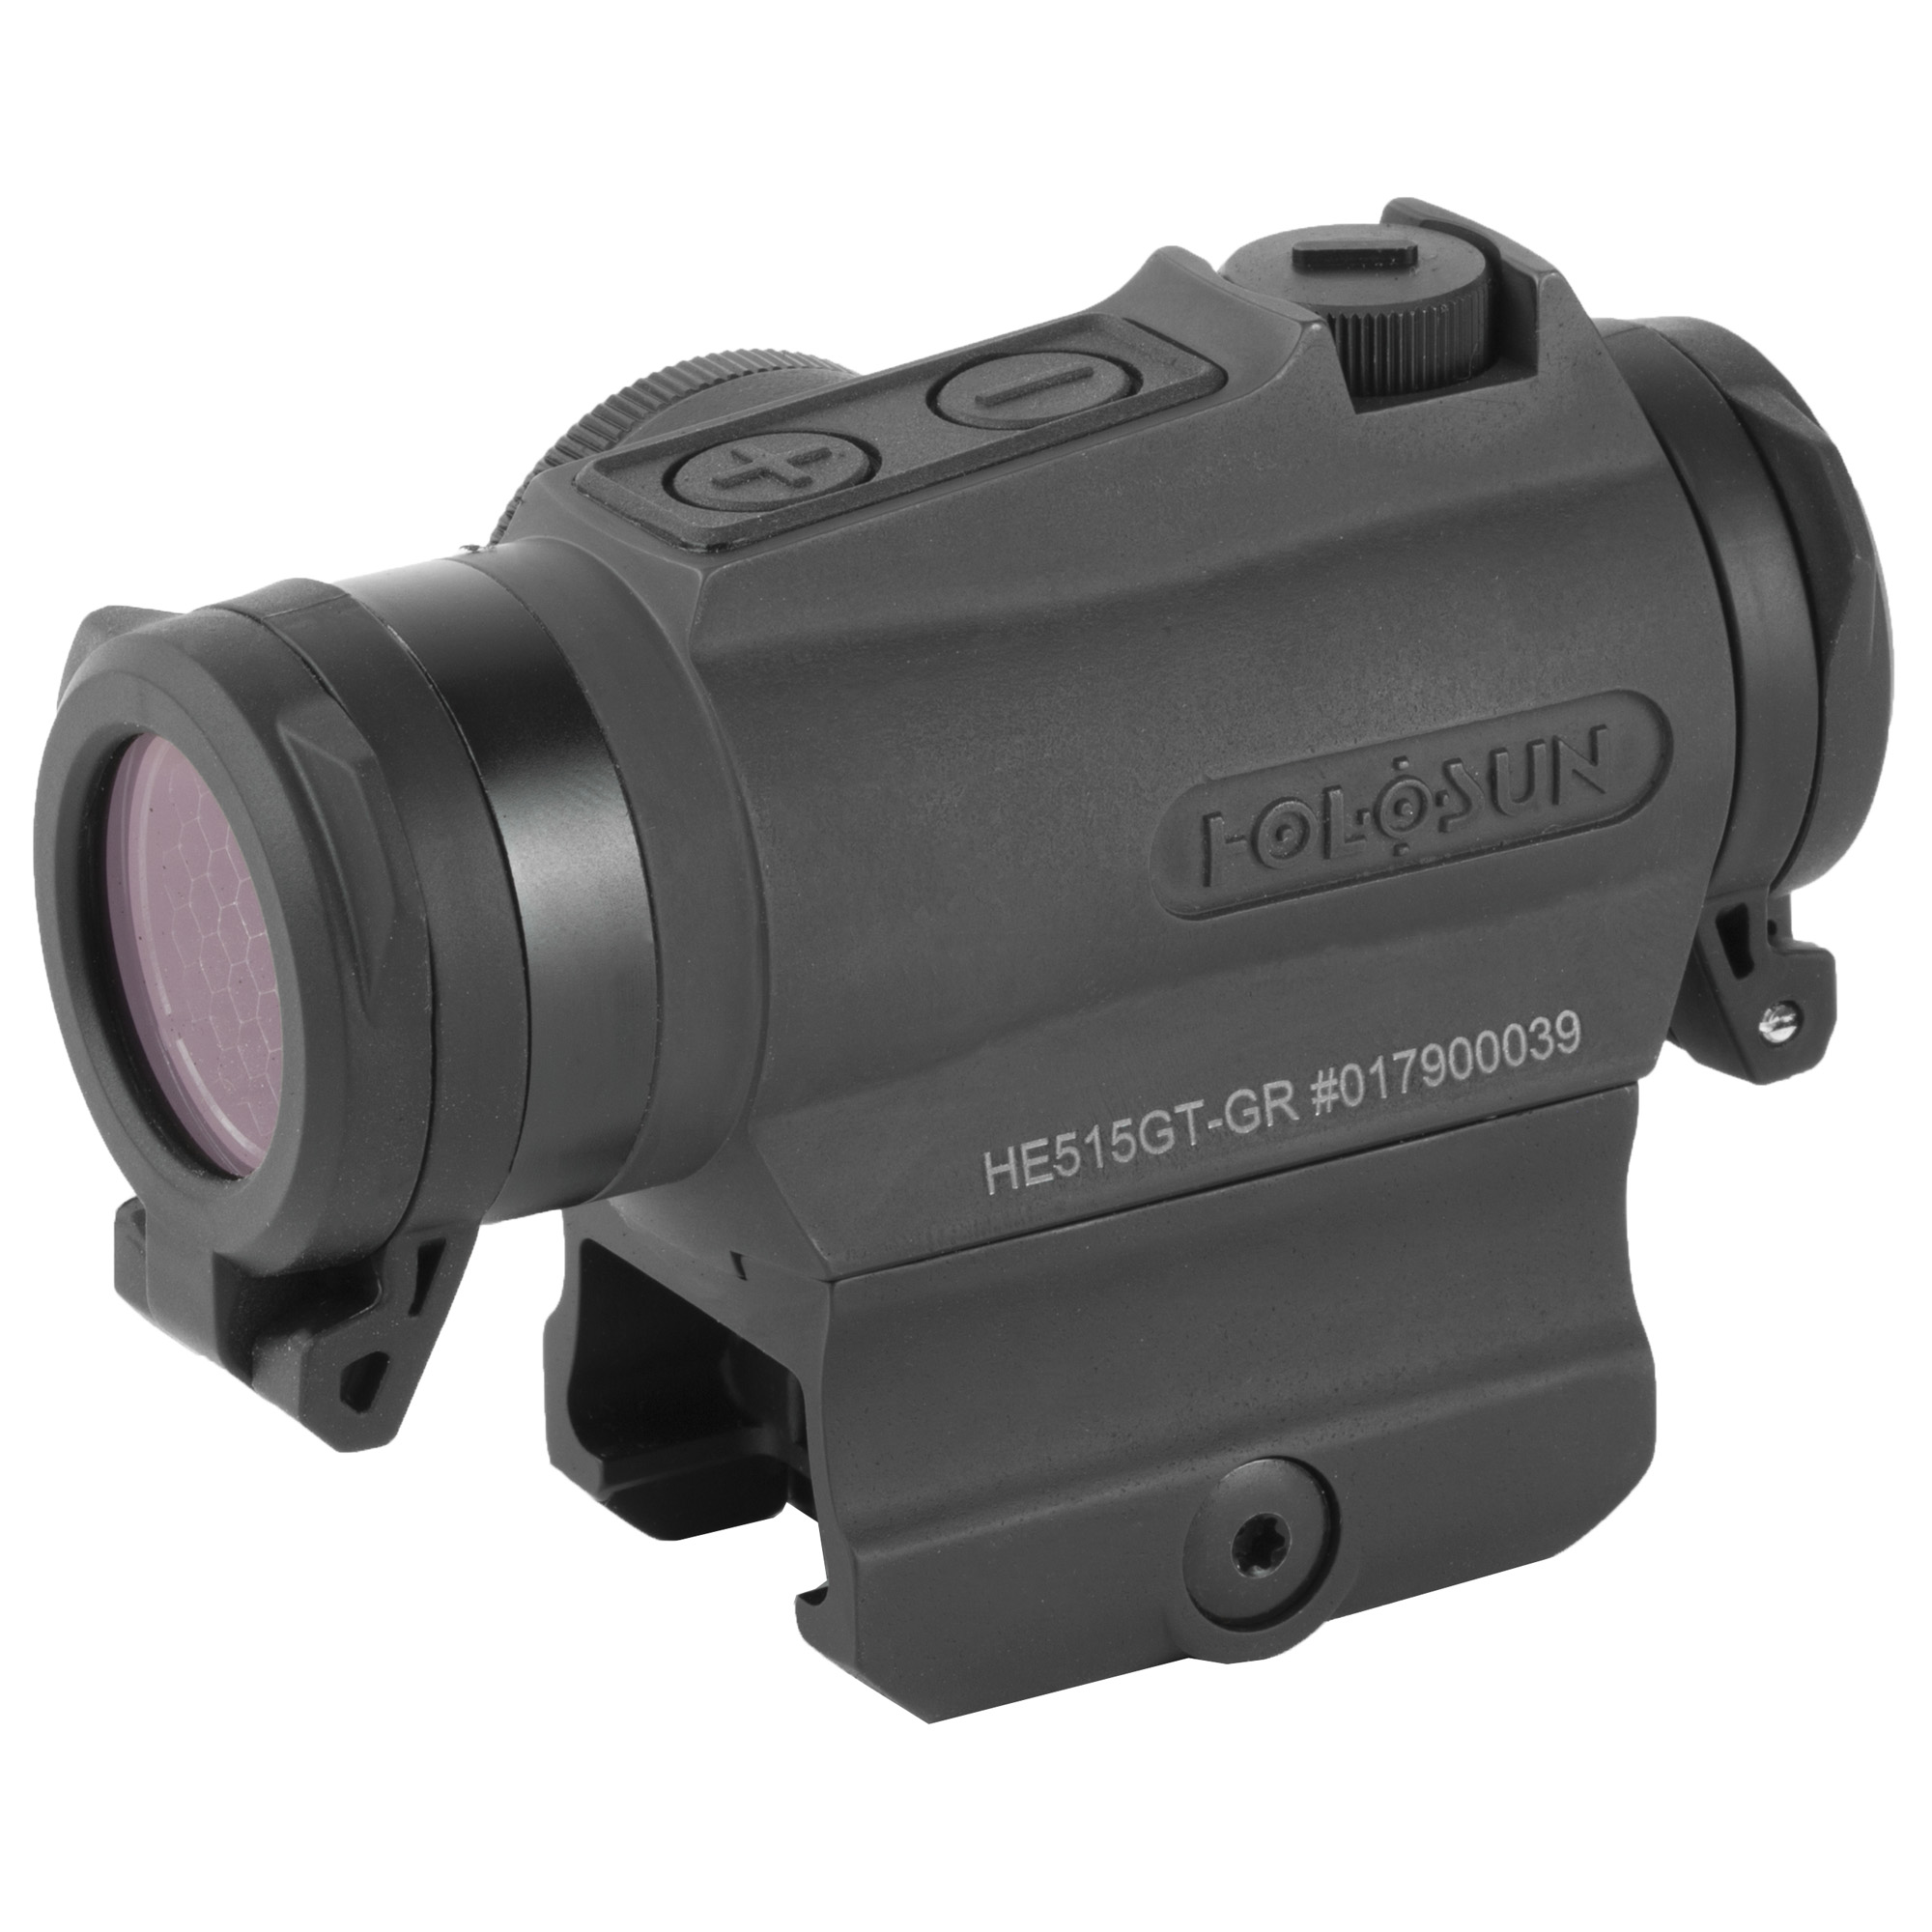 """The 515GT is a compact 20mm micro optic packed with innovations. Featuring Holosun's Multi-reticle system"""" the 515GT allows the operator to switch from a 2 MOA dot to a 65 MOA circle dot with a push of a button. Holosun's highly efficient light emitting diodes allow the 515GT optic to run on a CR2032 battery up to 5-years. The 515GT is housed in CNC machined Titanium and comes with removable"""" non-obstructing"""" clear flip-up lens covers and kill flash. Holosun's Shake Awake technology puts the optic to sleep with no motion and wakes it up"""" recalling the last setting with the slightest movement"""" conserving battery life even further. The HE515GT is built for all your needs no matter the weapon platform"""" environment"""" or type of use."""